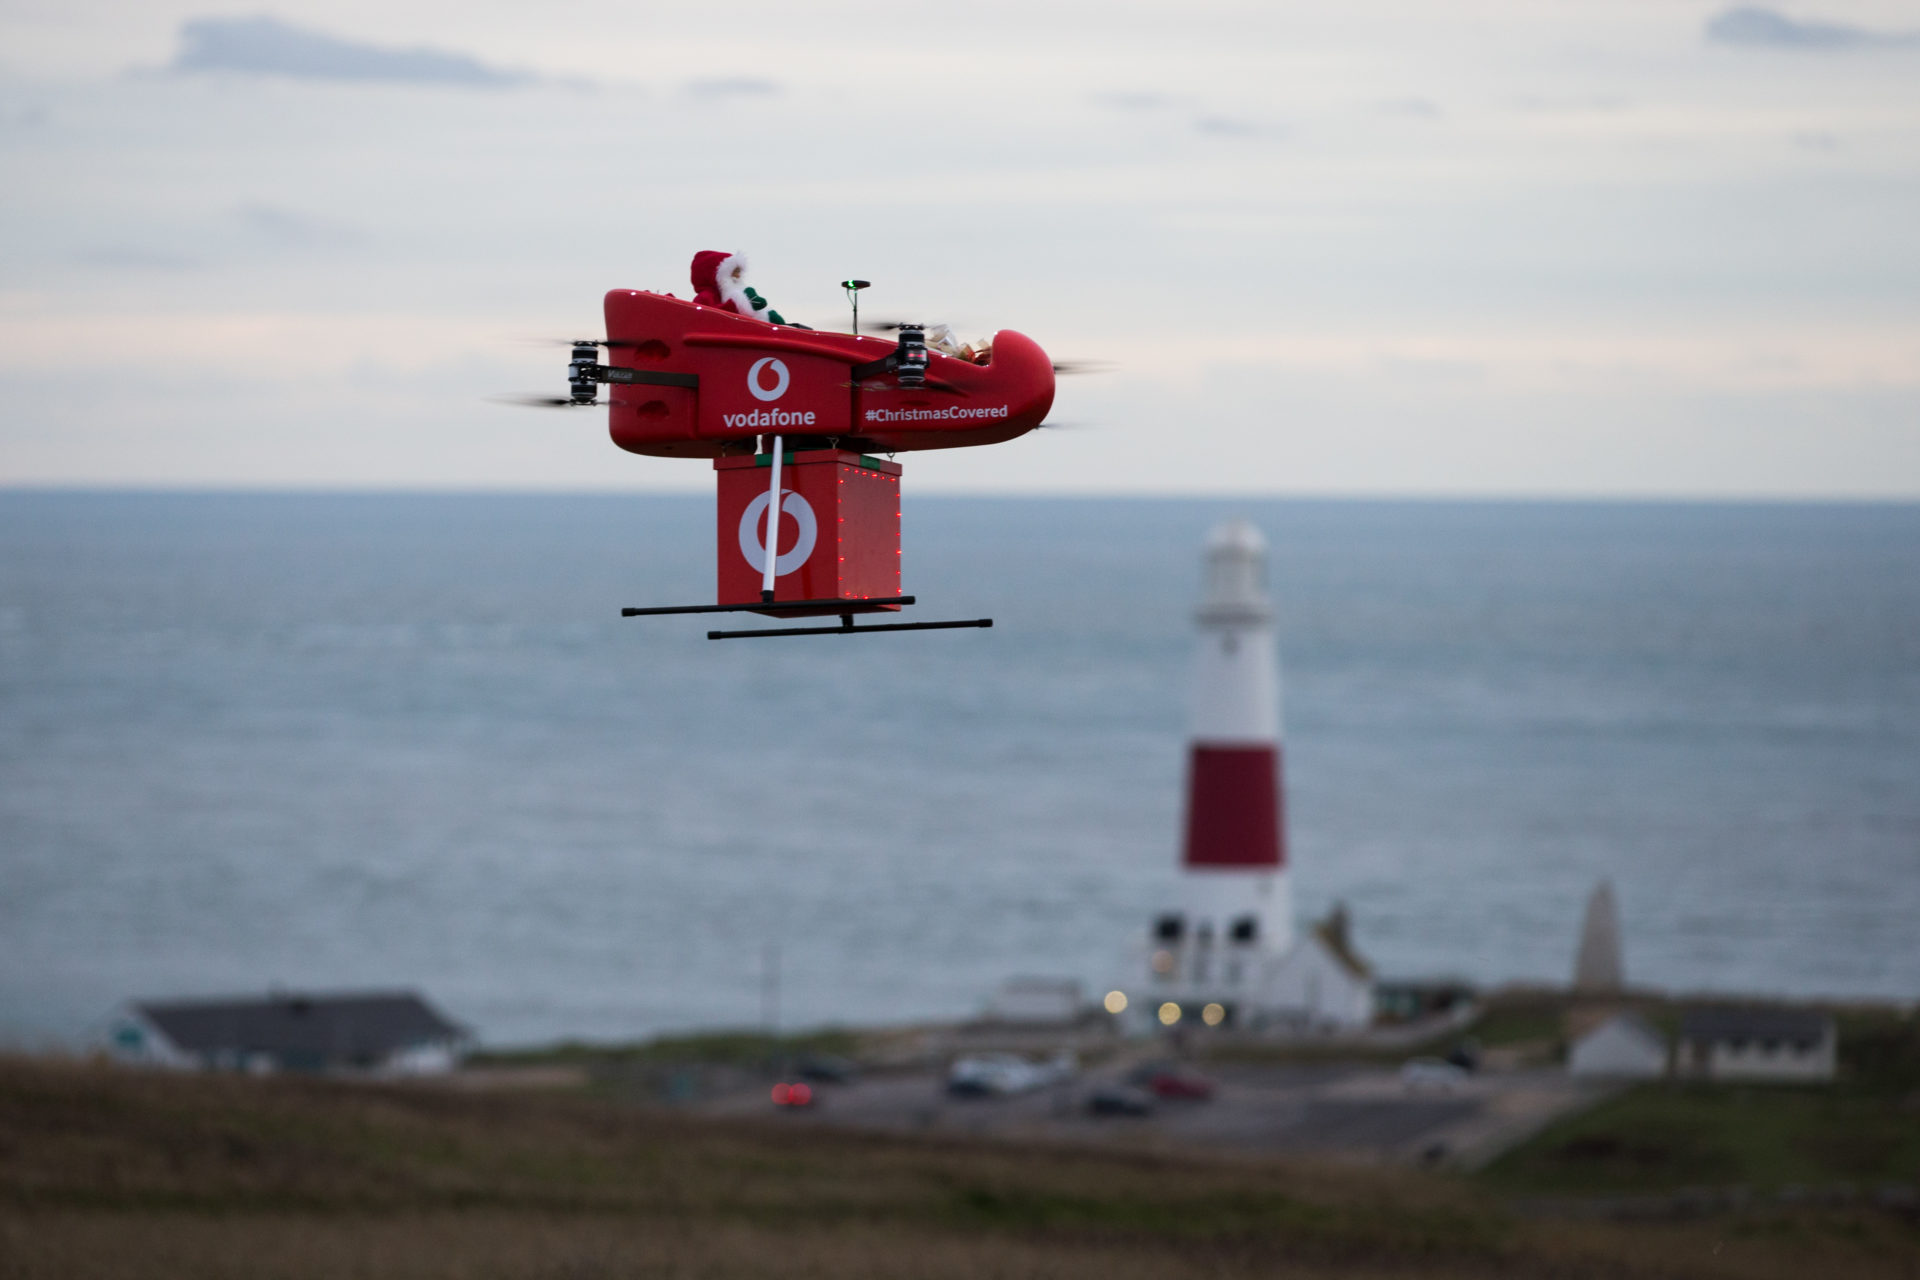 UK's first drone delivery over 4G sees Vodafone bring Christmas cheer